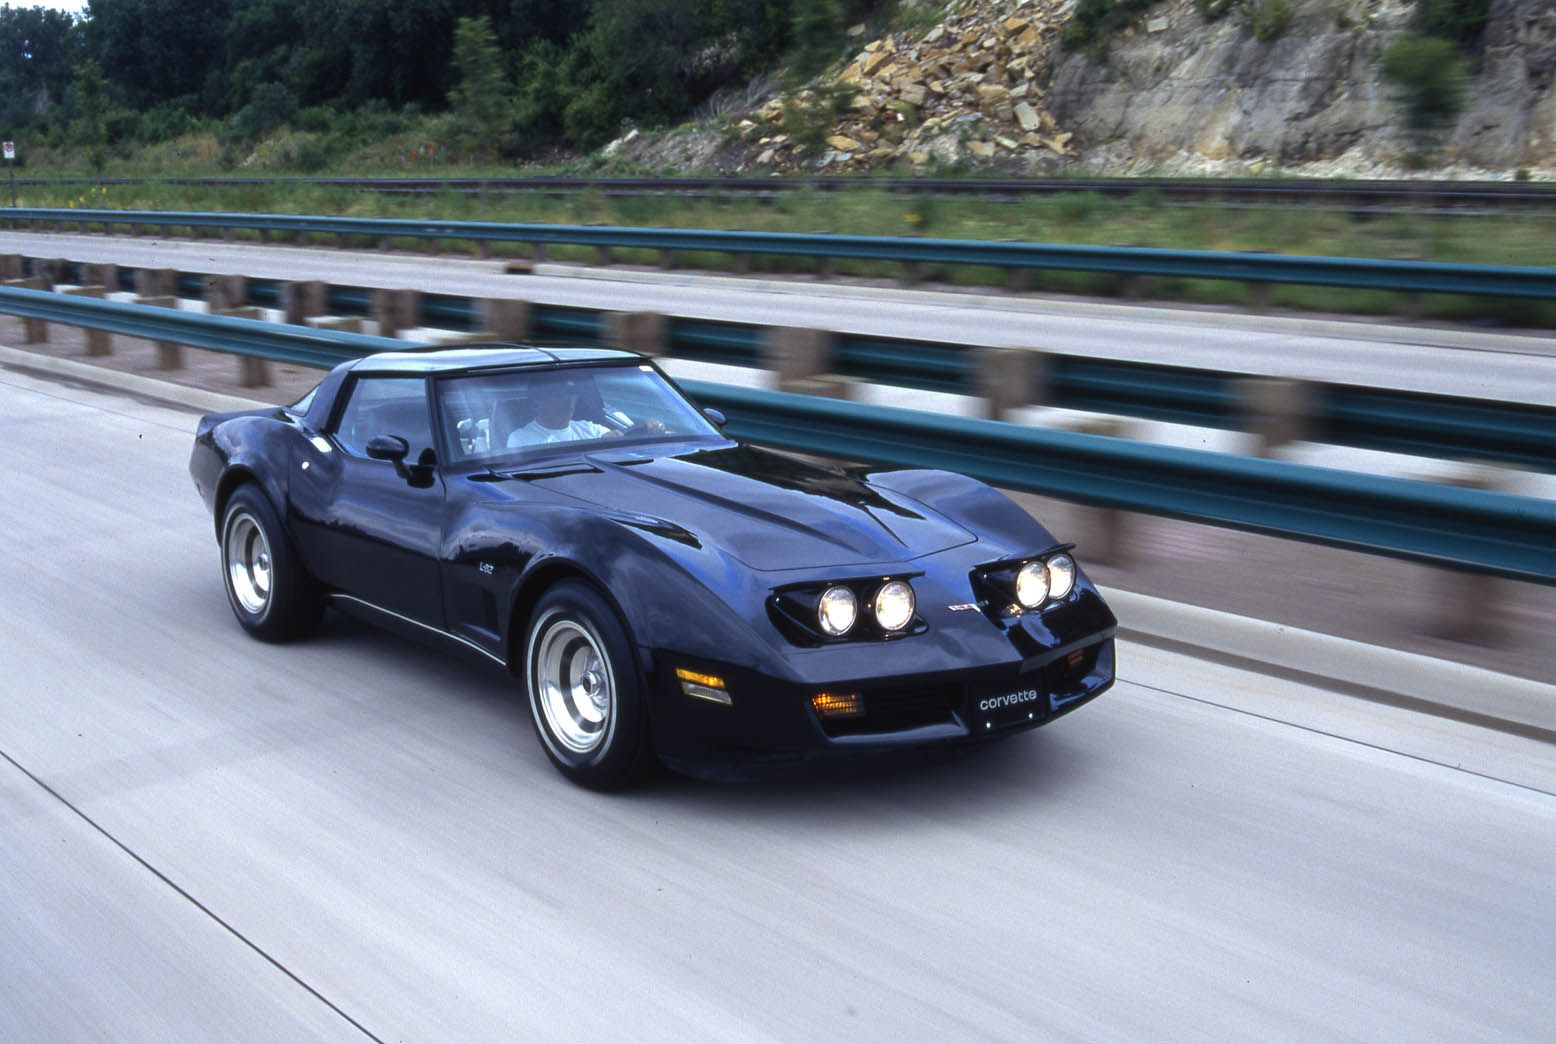 1980 corvette l 82 corvette pinterest corvette c3 general motors and cars. Black Bedroom Furniture Sets. Home Design Ideas